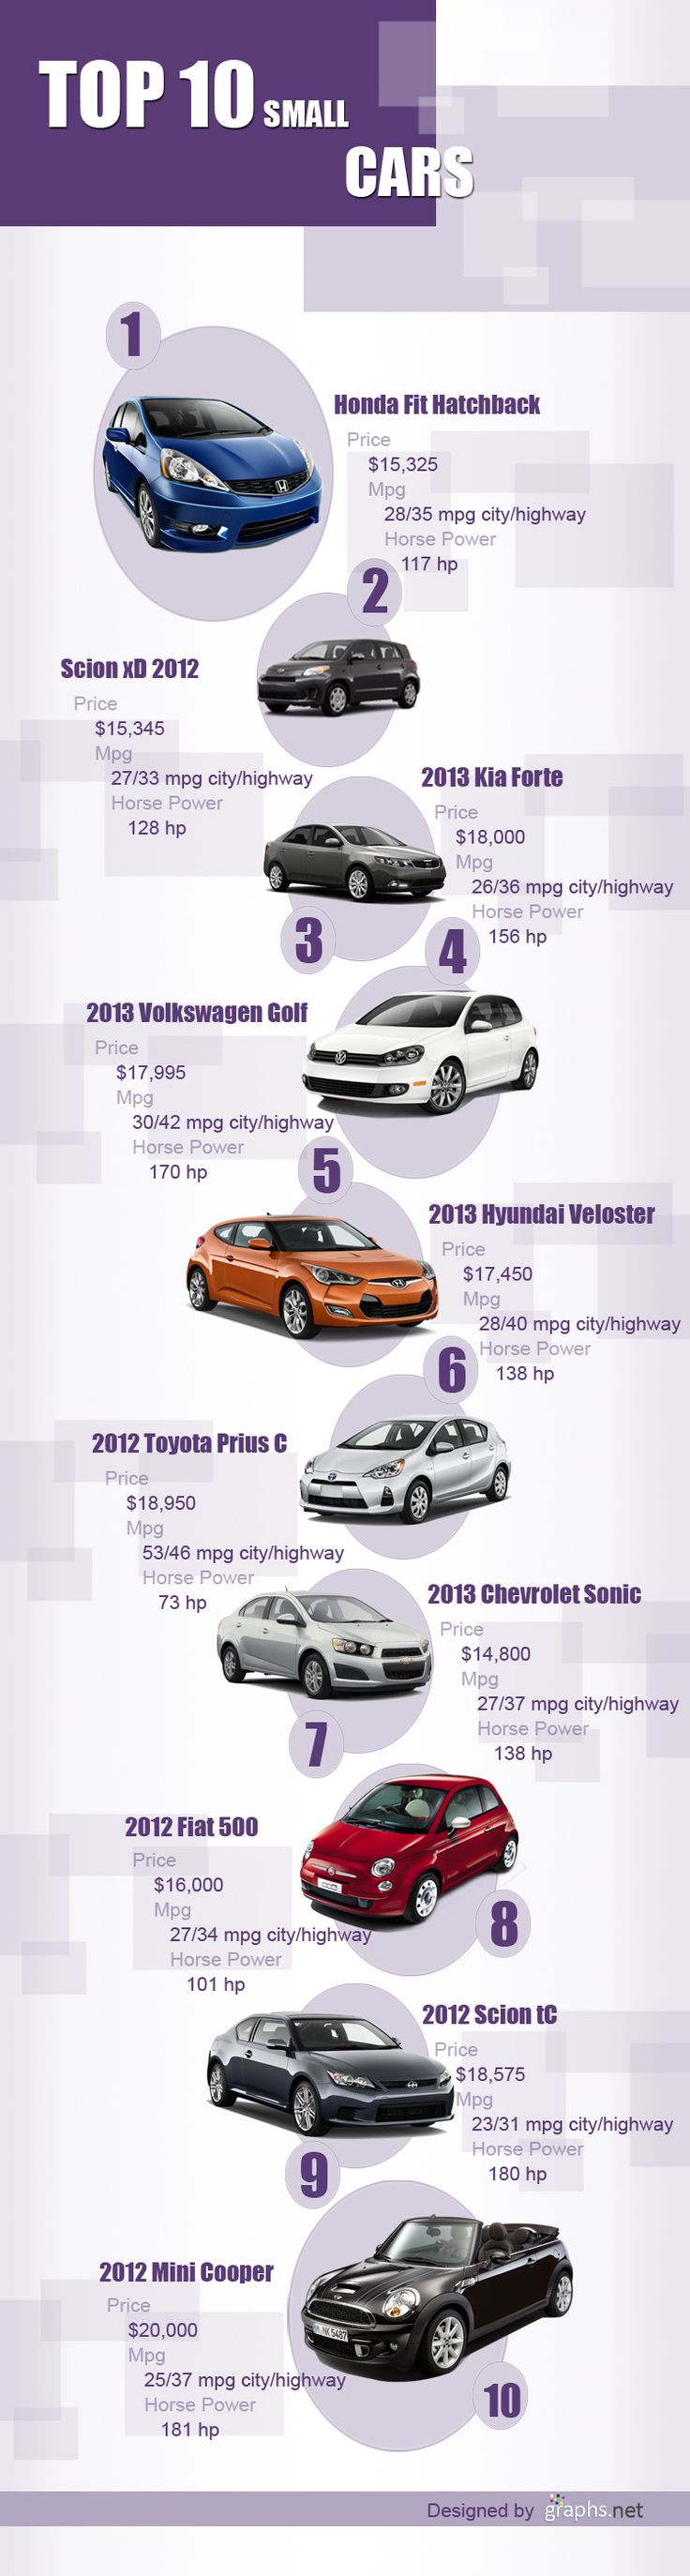 Top 10 Small Cars In The World #infografia